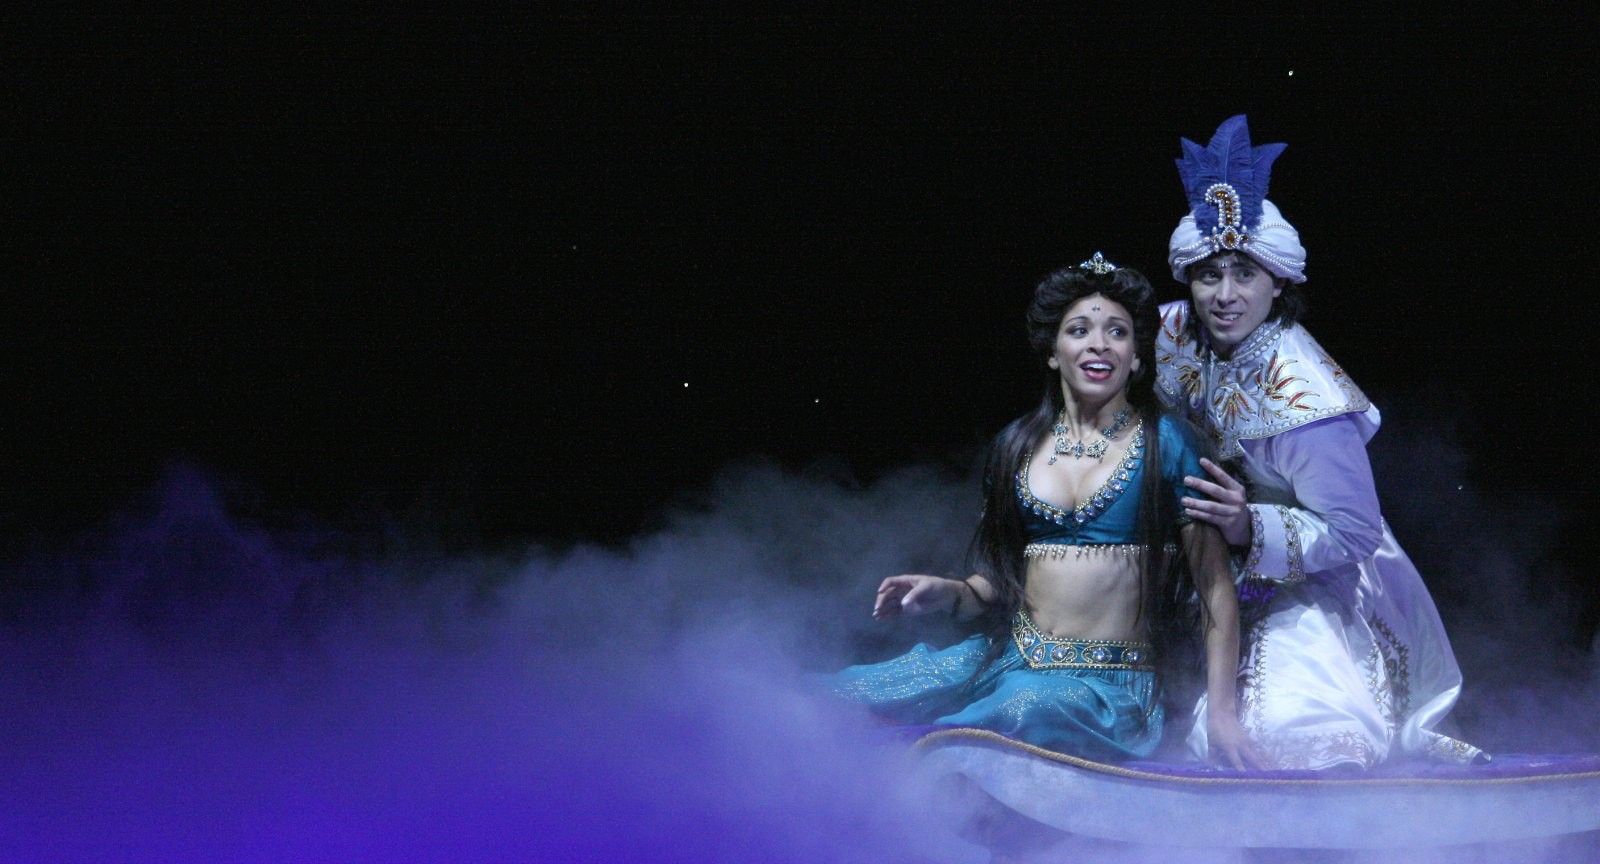 Aladdin musical to premiere in West End in June 2016